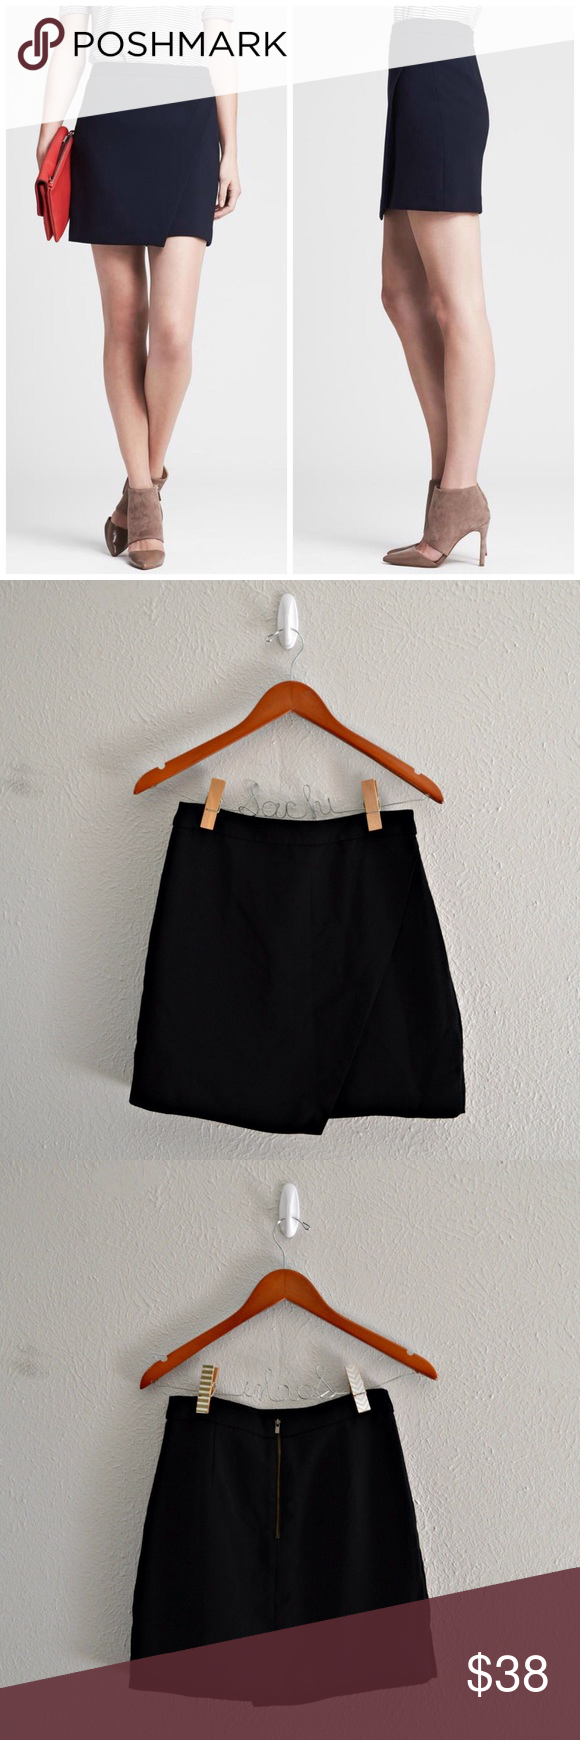 """Banana Republics Black Wrap Mini Skirt Black wrap style skirt from Banana Republic. Has an exposed back zipper closure. In excellent condition!  